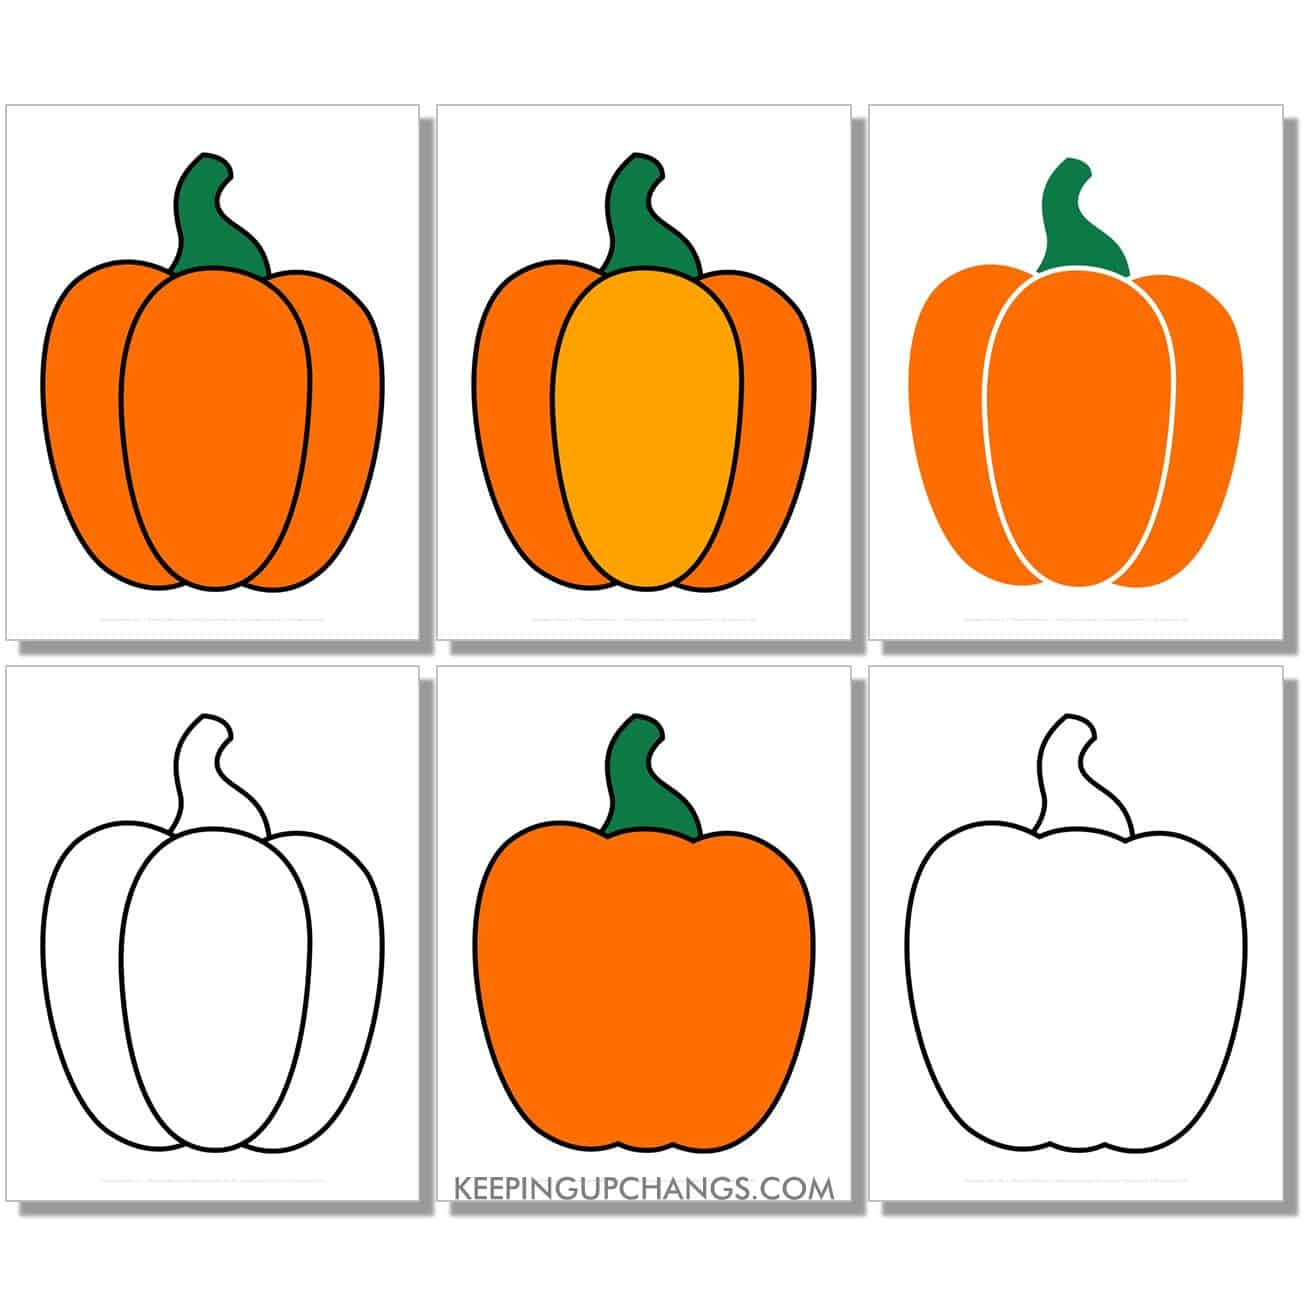 free large small pumpkin in color, black and white, silhouette, full size page.